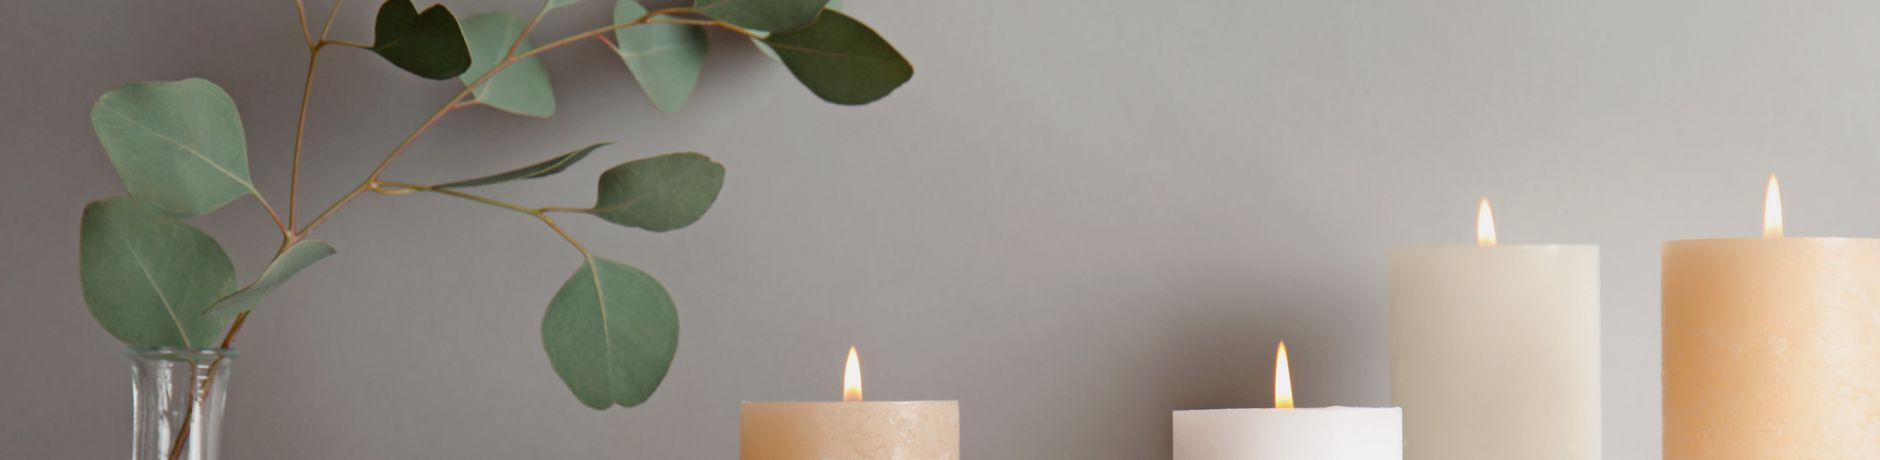 candle-category-banner.jpg